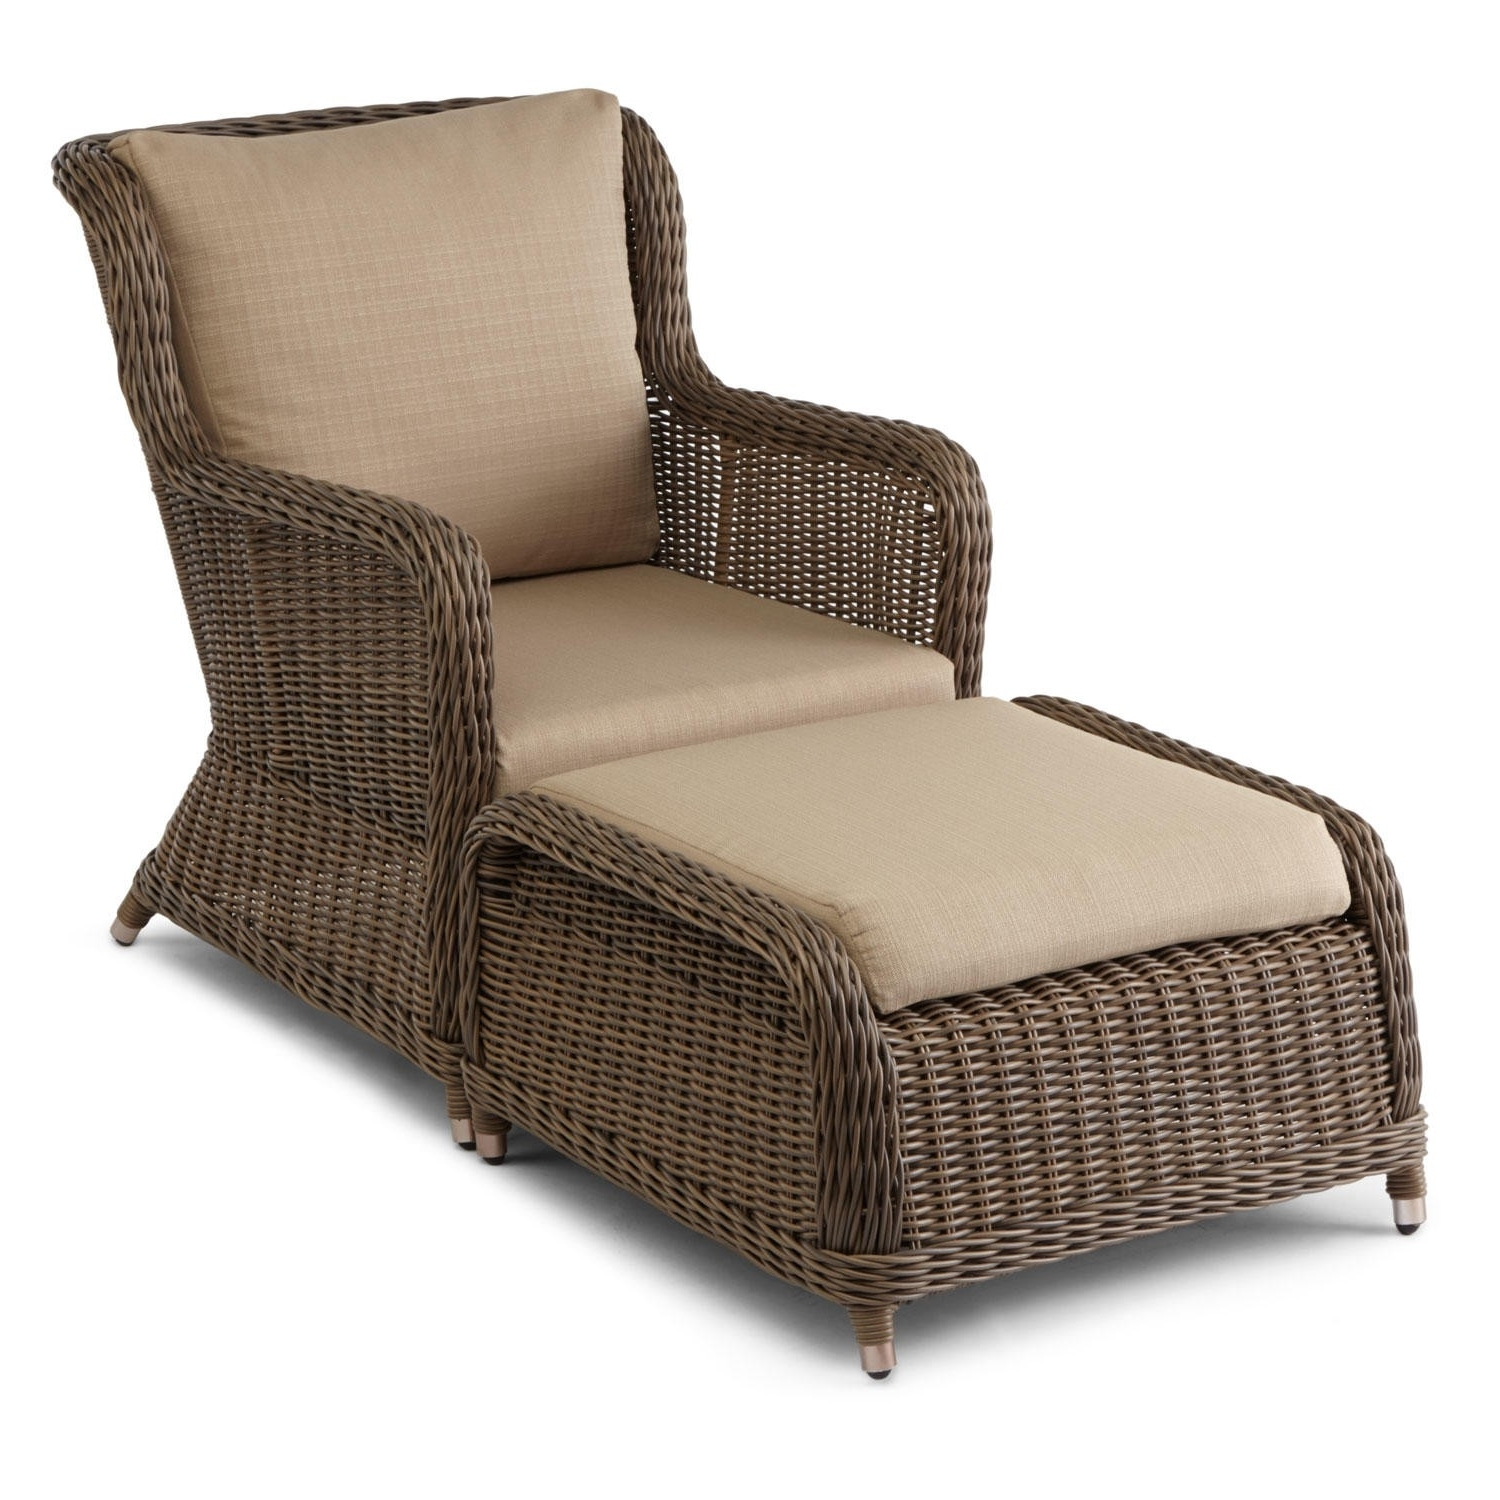 Chairs With Ottoman With Regard To Most Up To Date Wicker Chair With Ottoman – Modern Chairs Quality Interior (View 17 of 20)